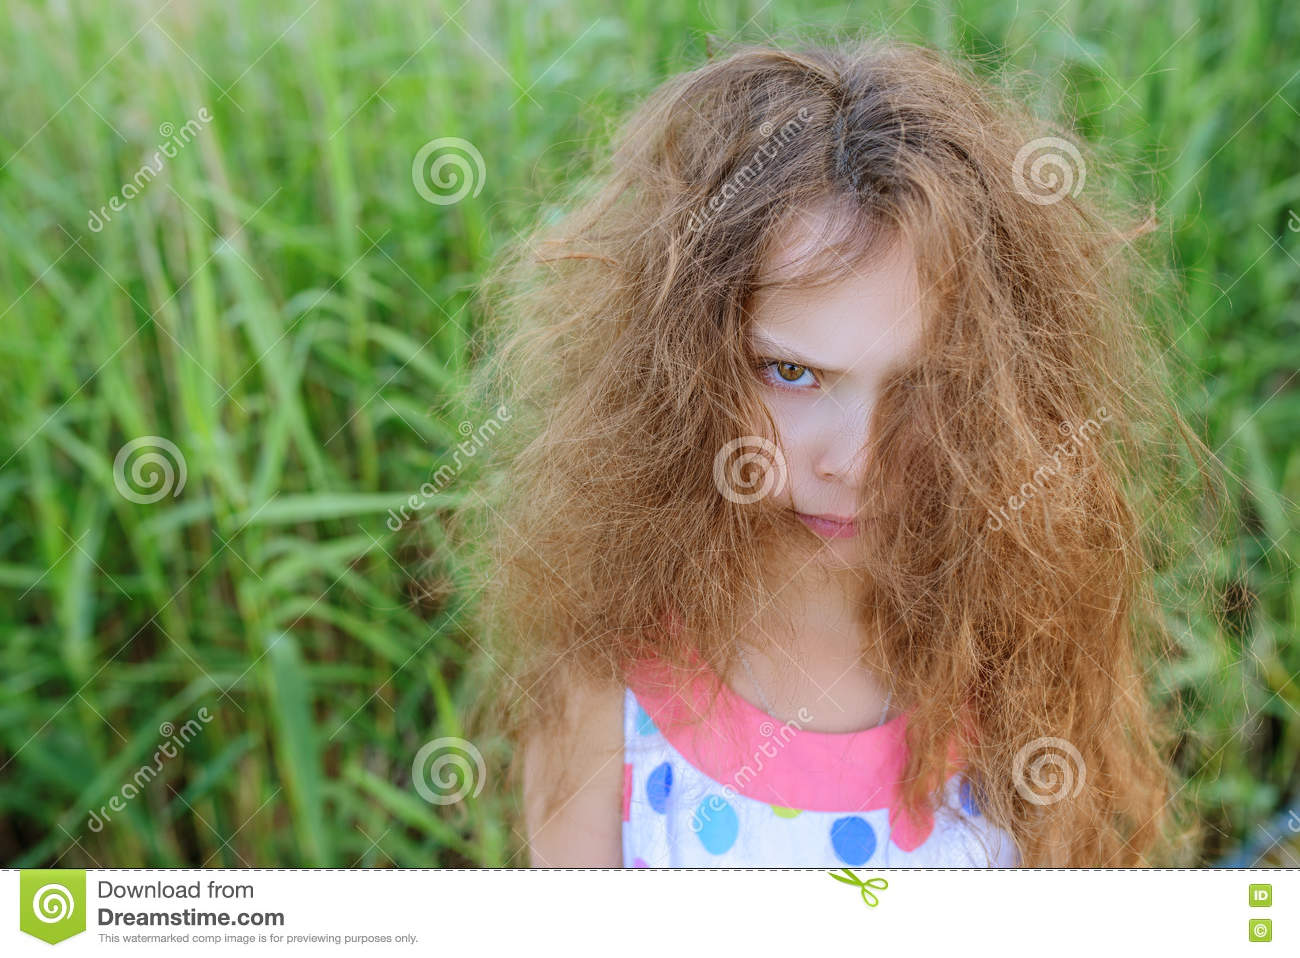 Little Beautiful Girl With Curly Hair Stock Image - Image of ...